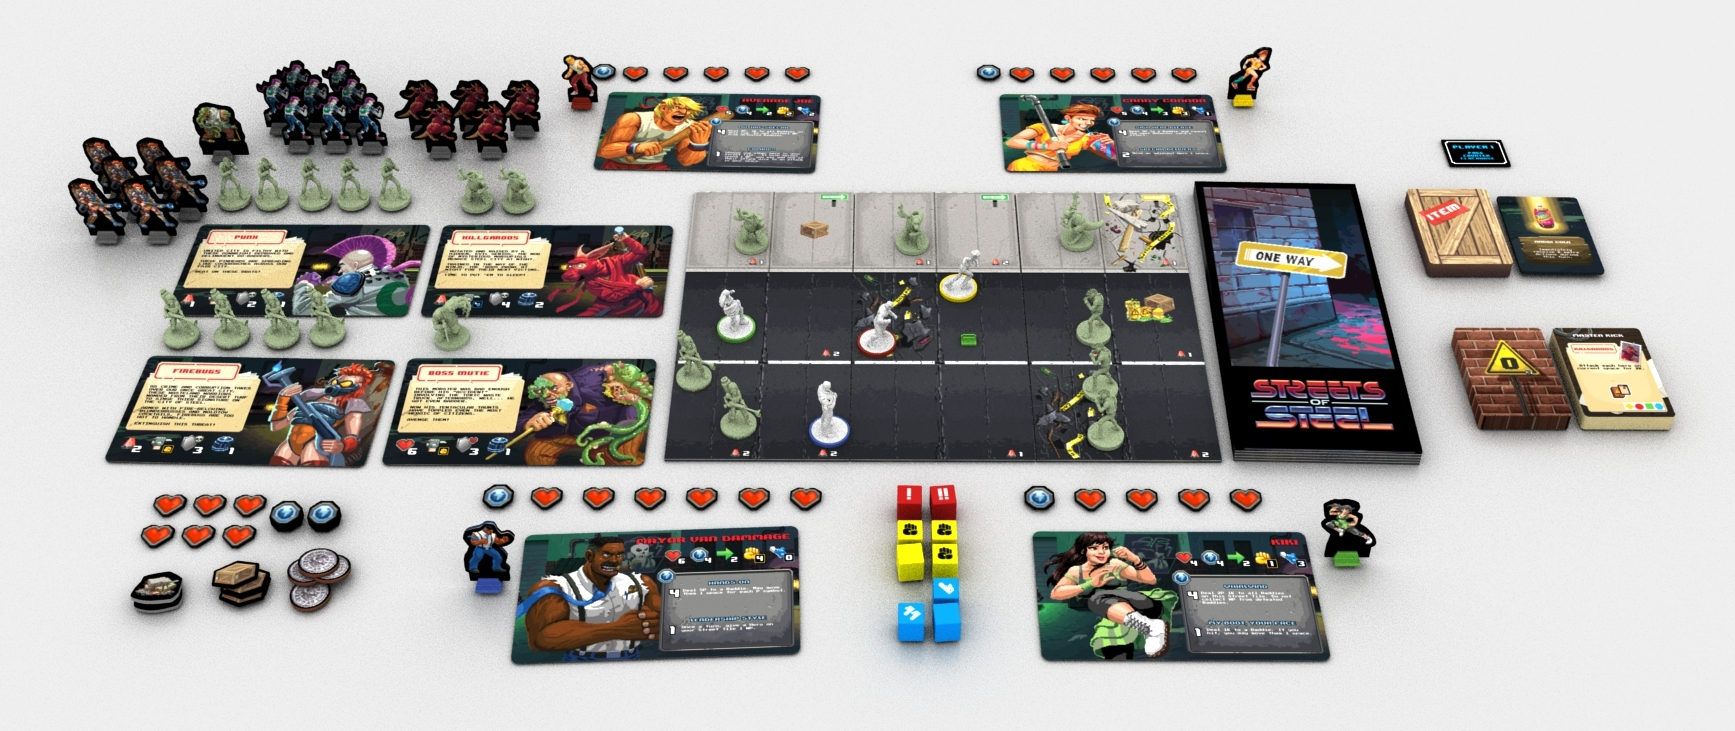 This is an image of the pre-release, Kickstarter preview game. Elements may change in final production run.